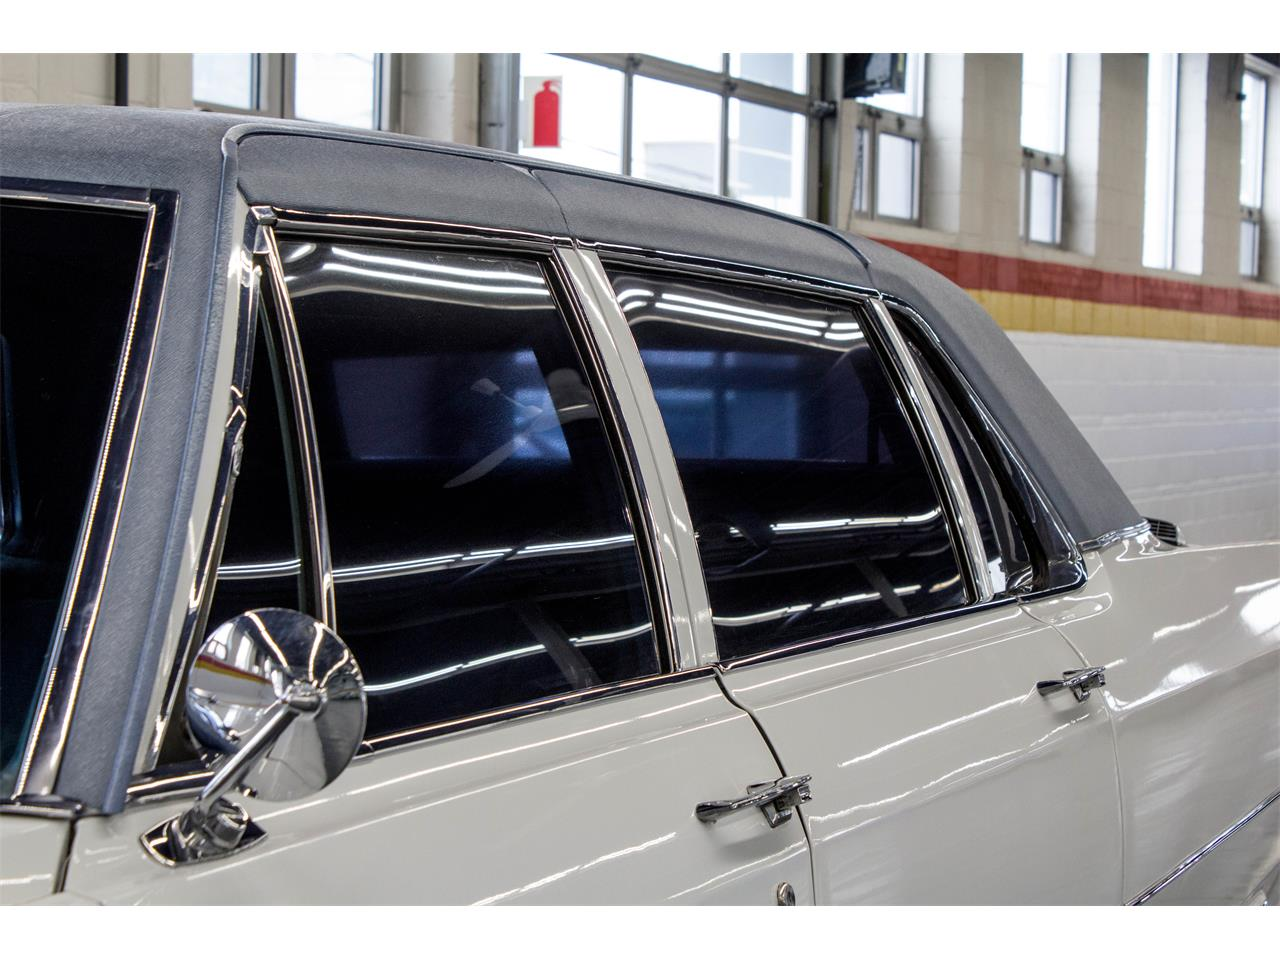 Large Picture of 1966 Cadillac Fleetwood Limousine - $49,995.00 - NKXQ